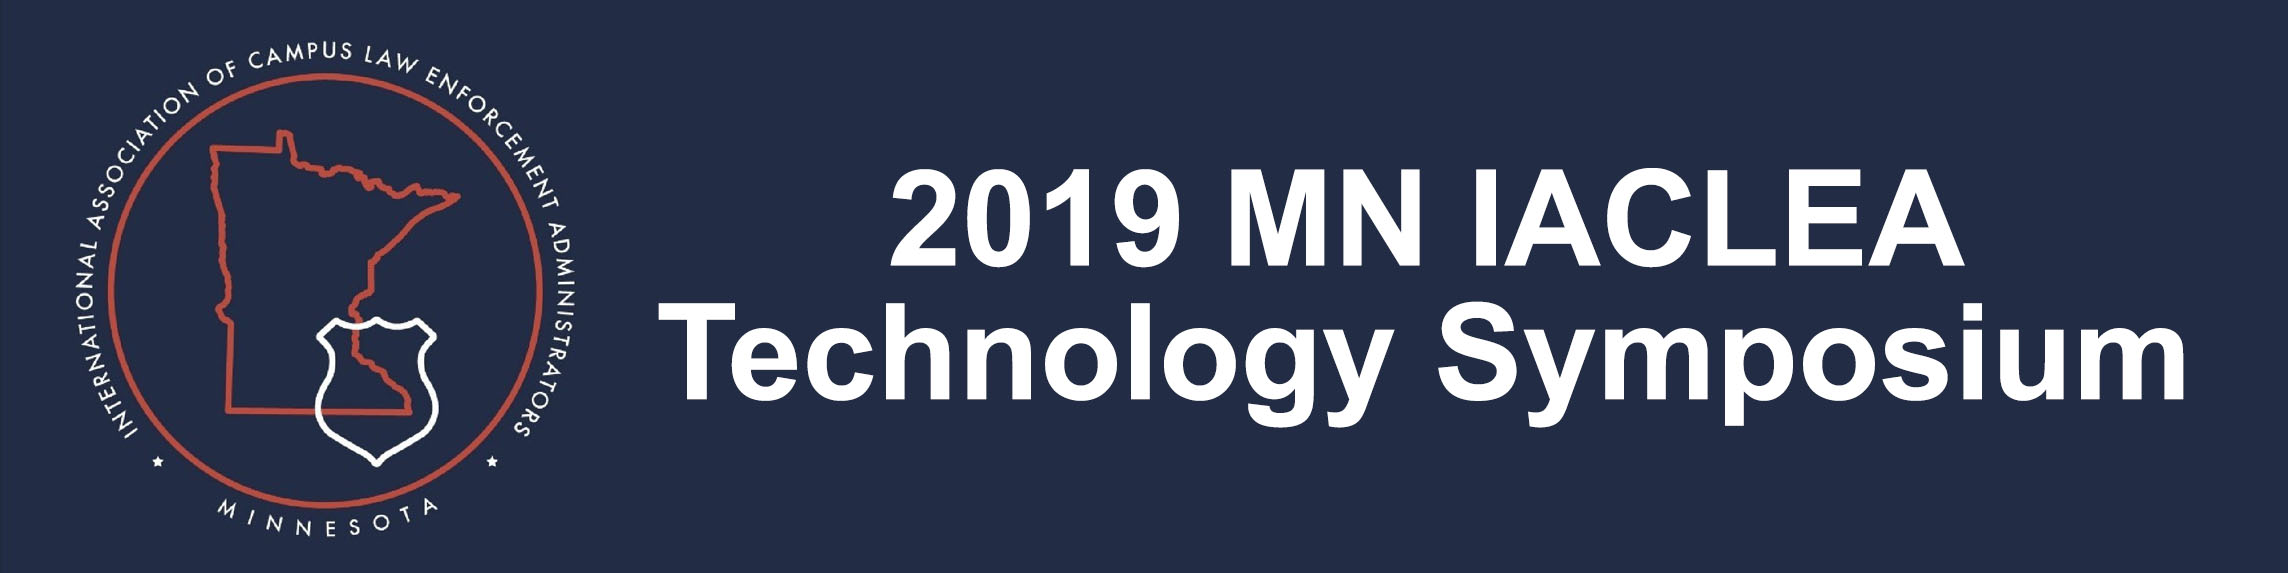 2019 MN IACLEA Technology Symposium